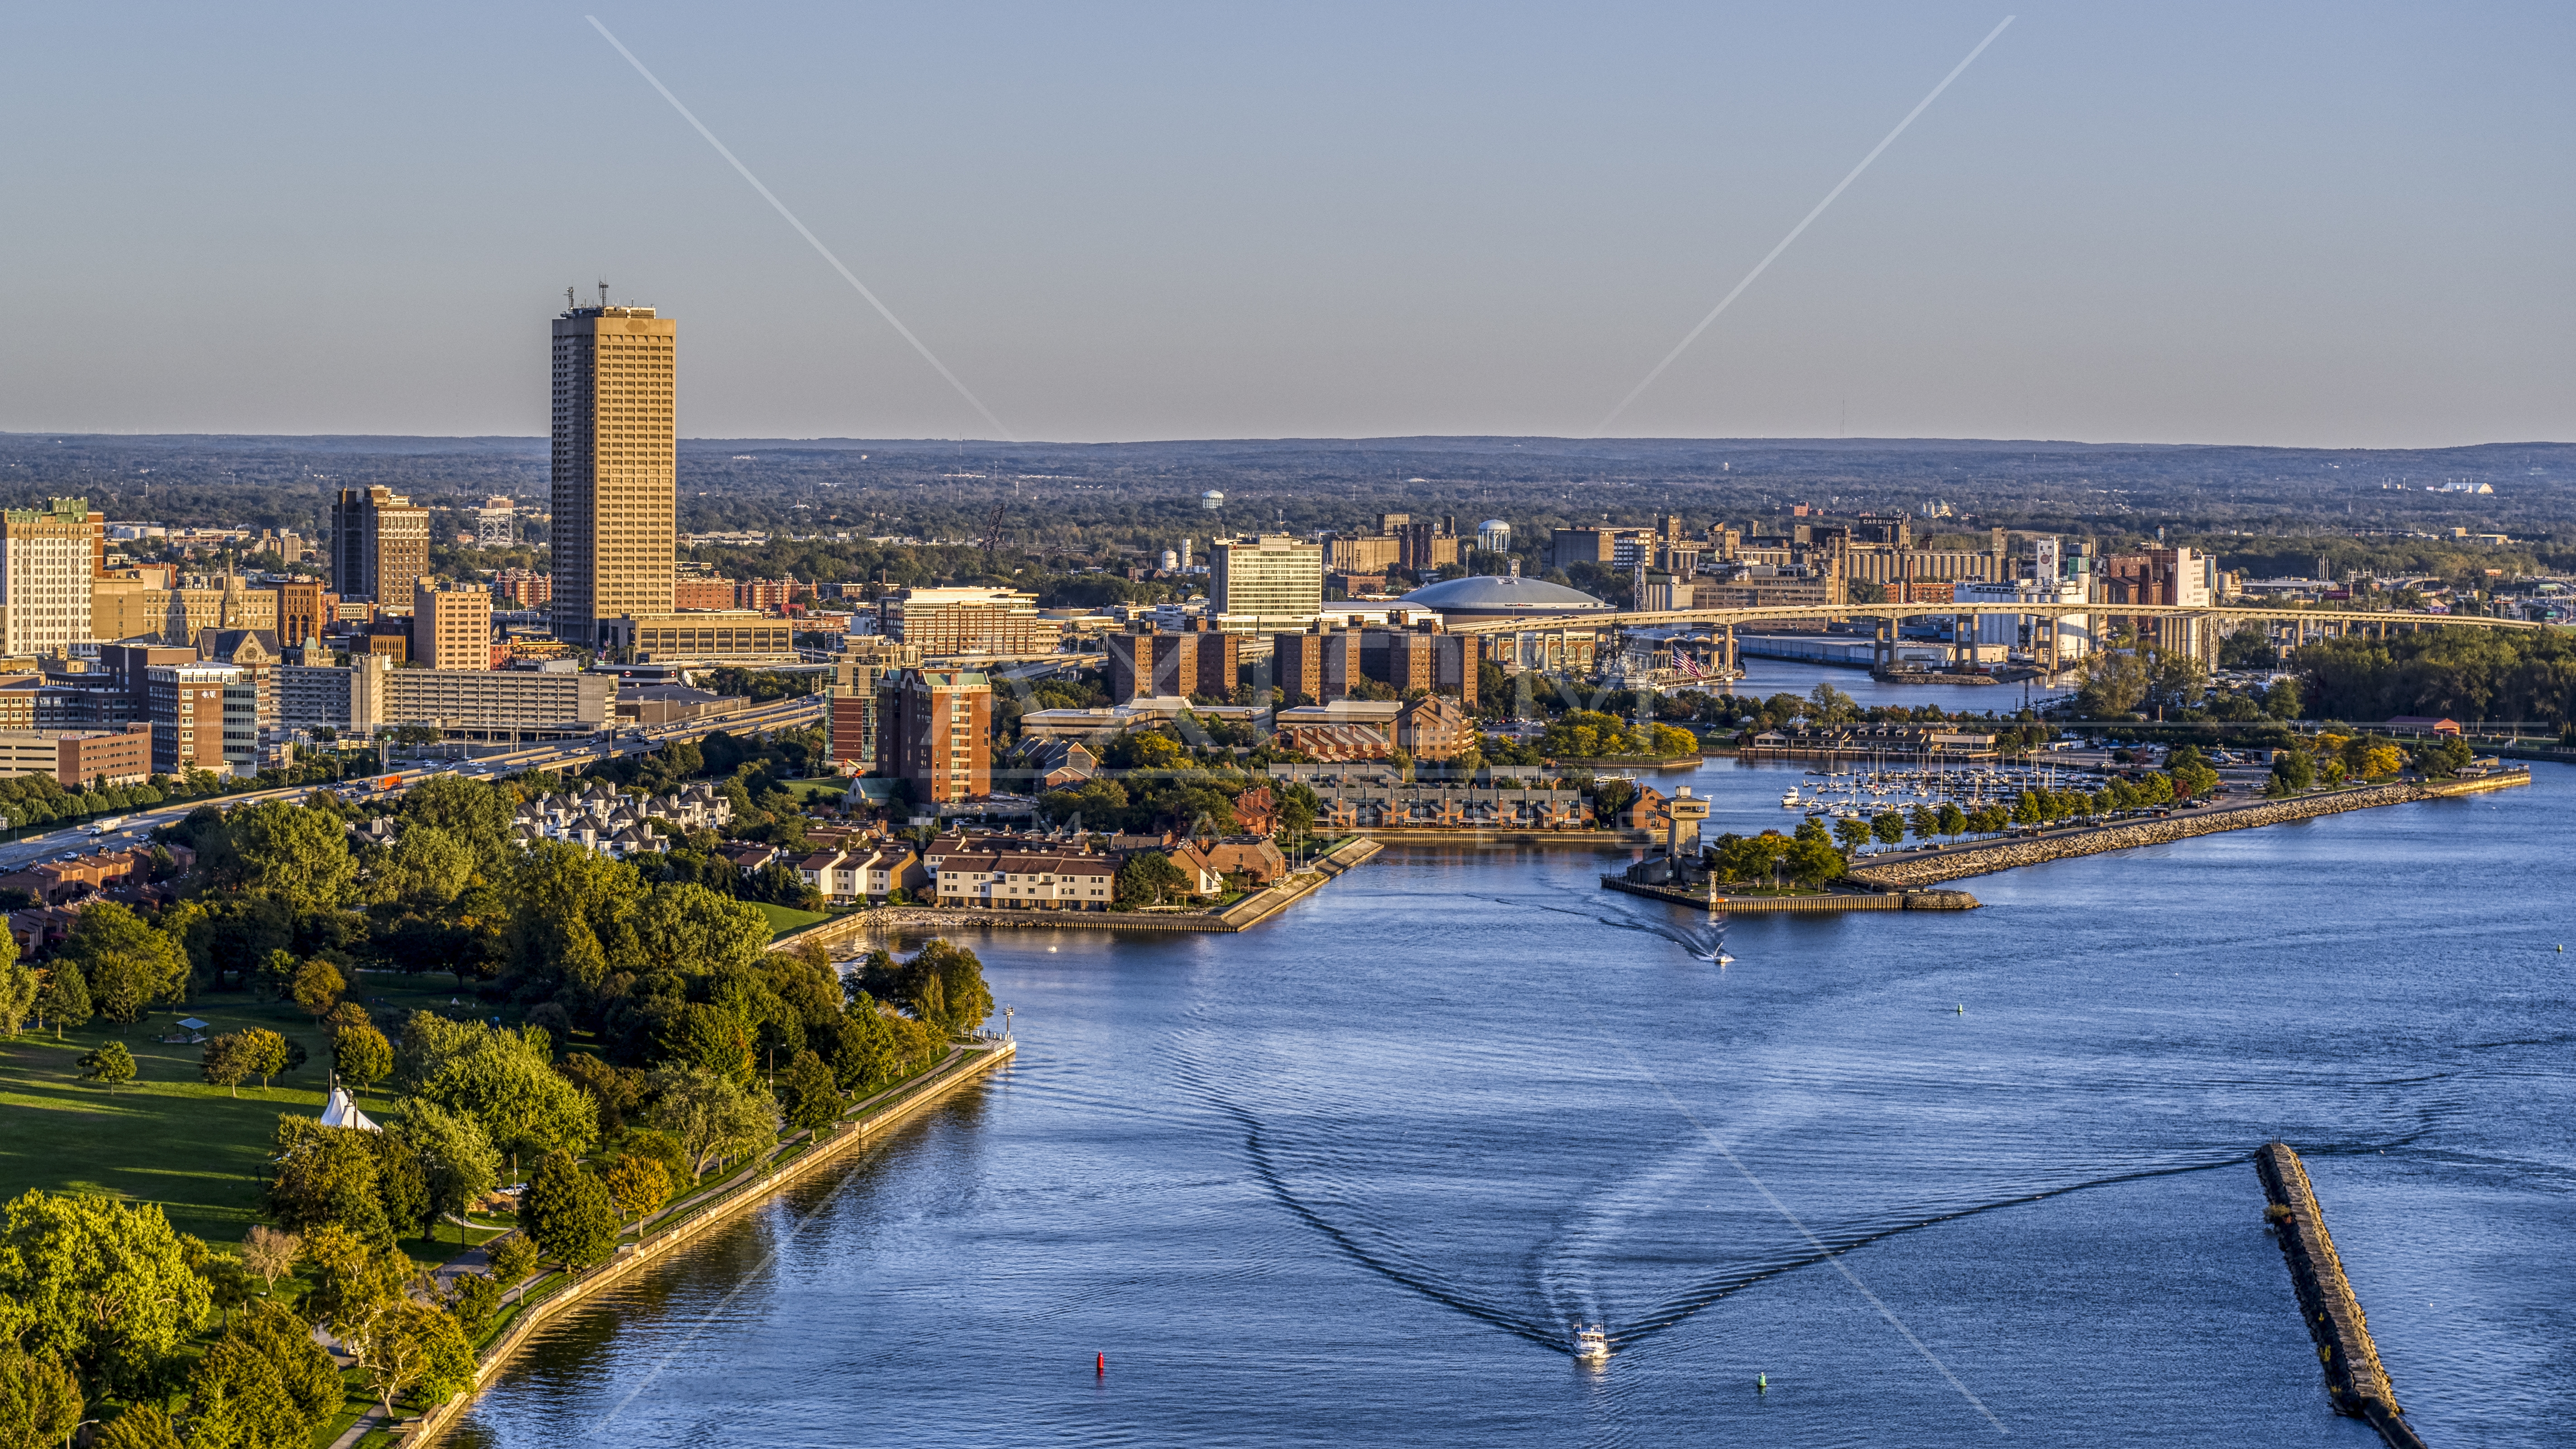 Seneca One Tower And Buffalo River At Sunset Downtown Buffalo New York Aerial Stock Photo Dxp002 203 0008 Axiom Images